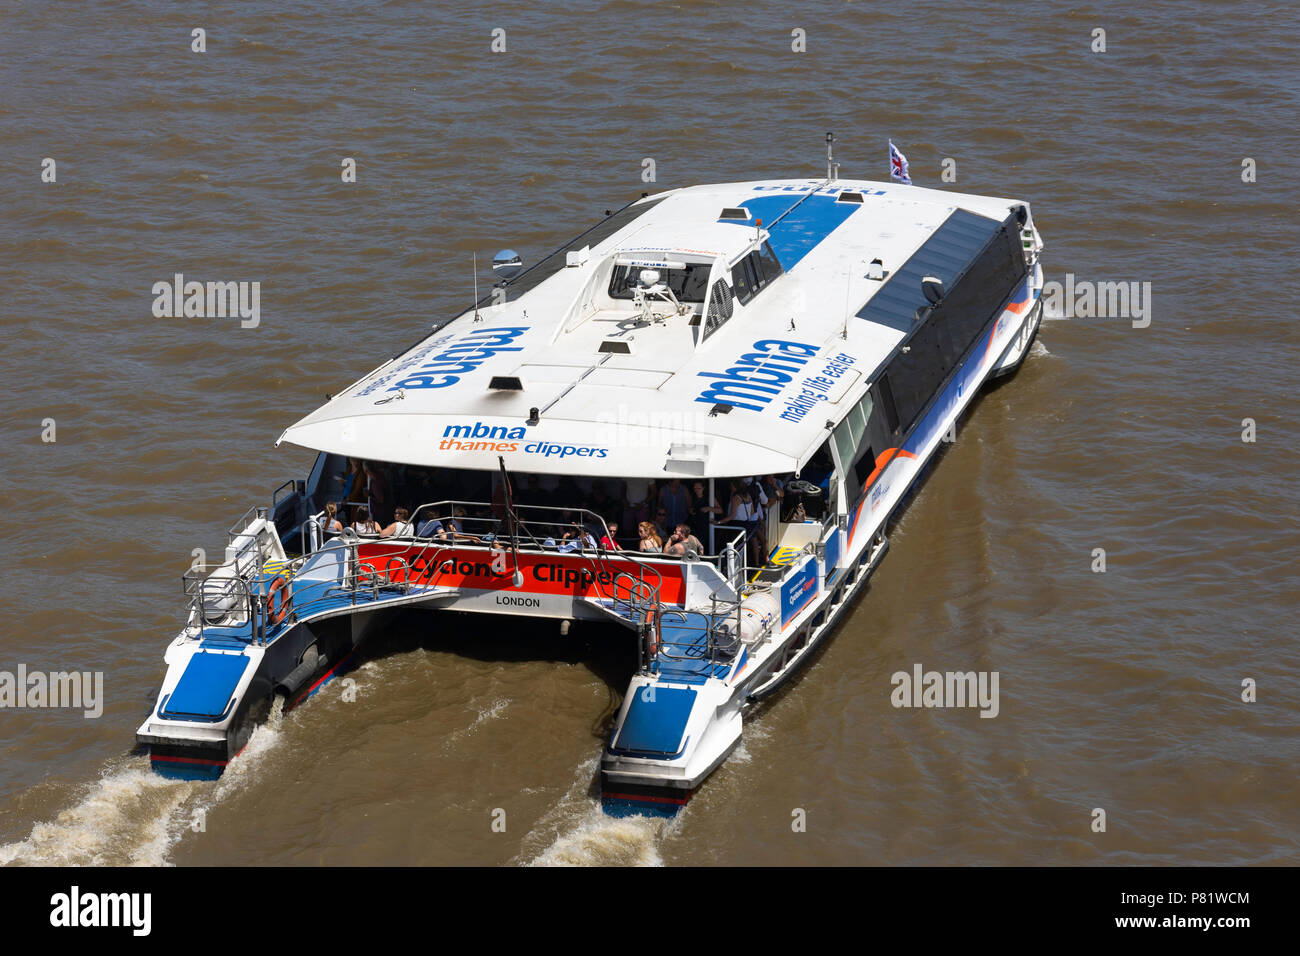 MBNA Thames clipper river bus services on River Thames at South Bank, London Borough of Lambeth, Greater London, England, United Kingdom - Stock Image